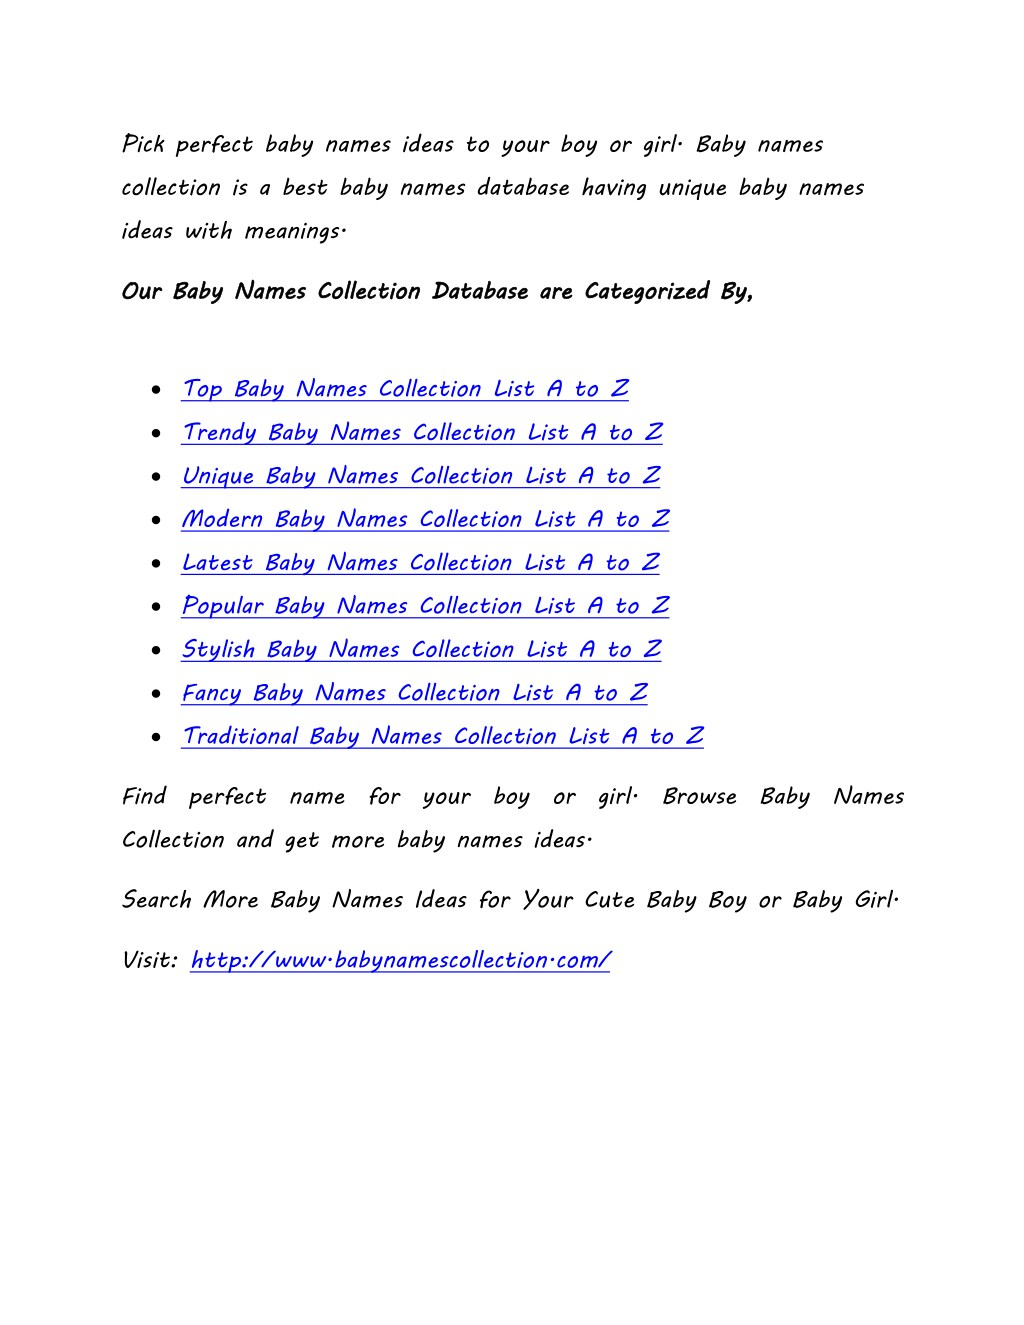 PPT - Top, Trends, Unique Baby Names Collection List  A to Z Baby